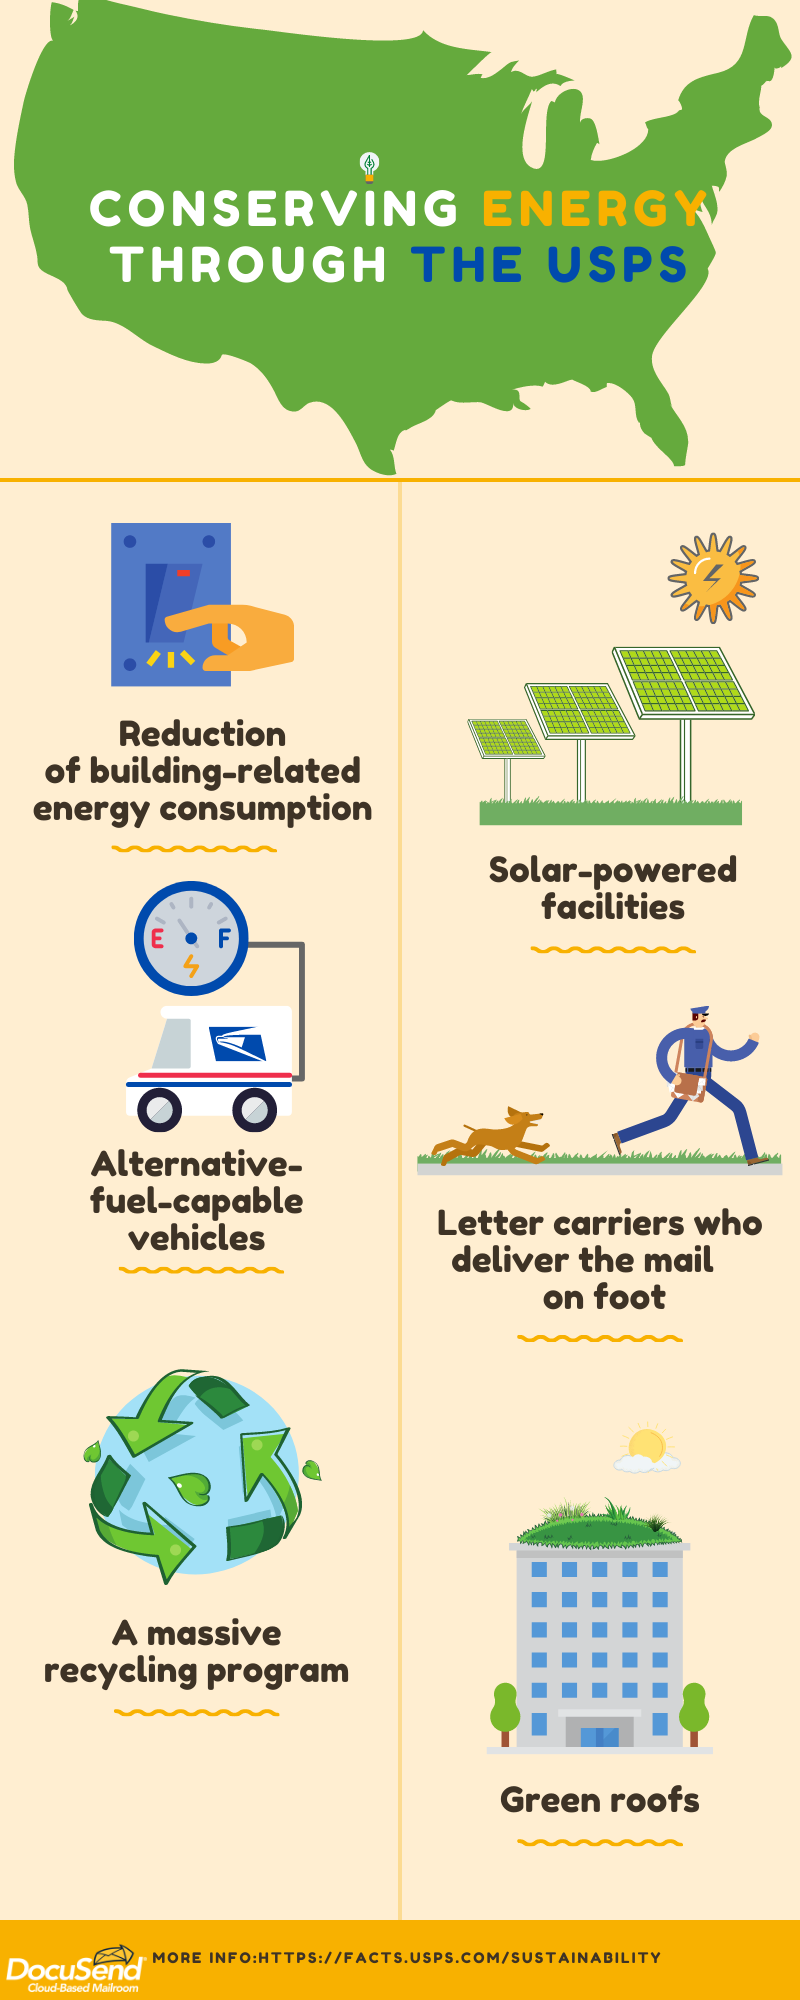 Conserving Energy through the USPS